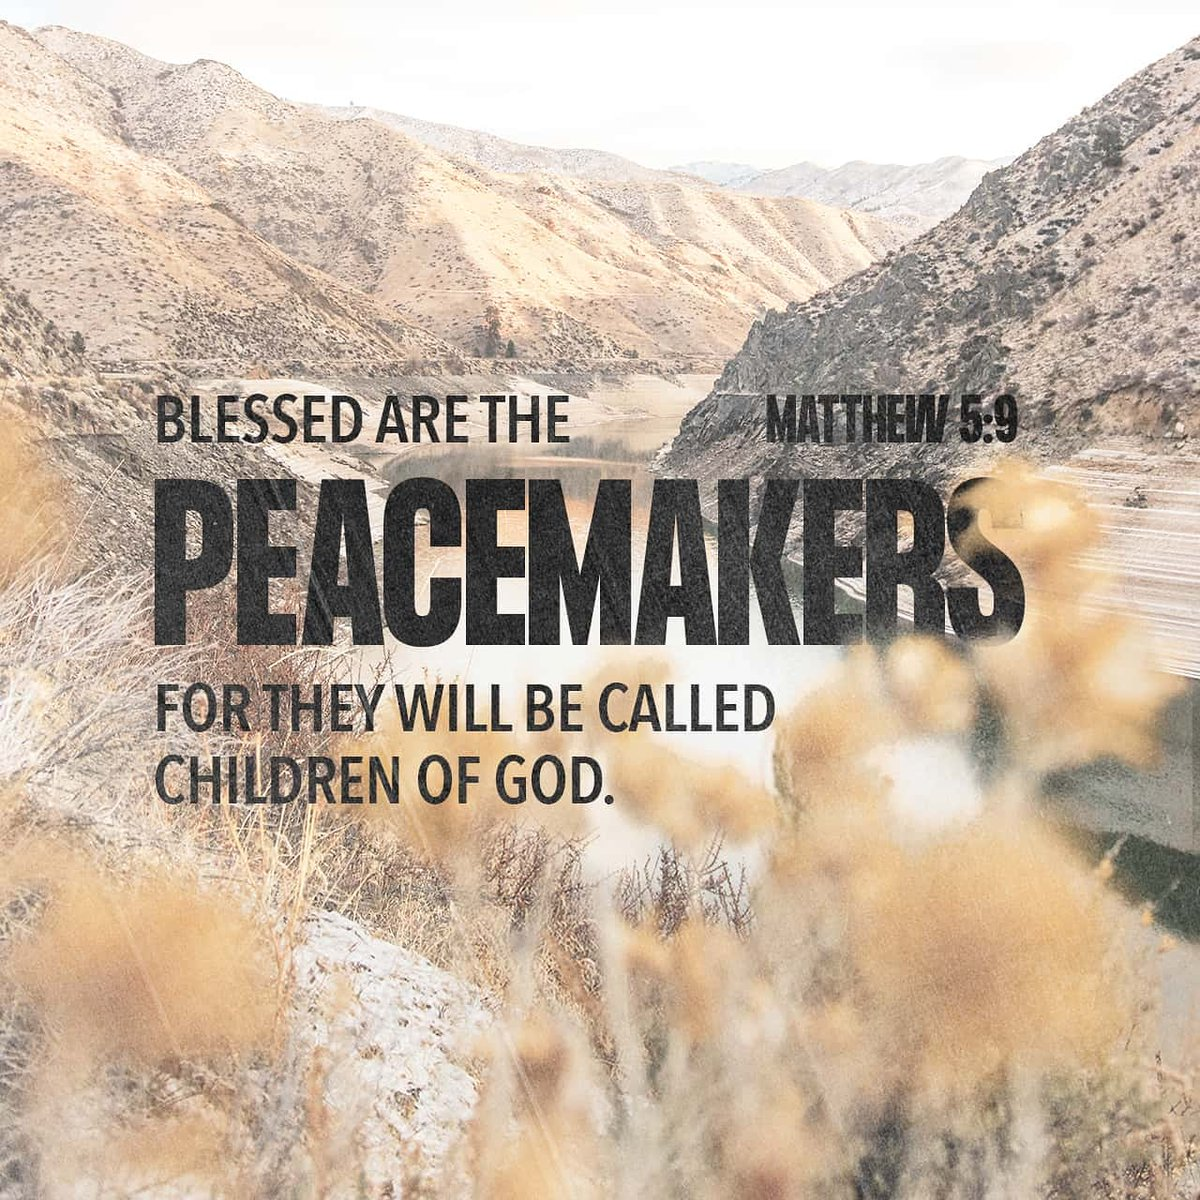 Blessed are the peacemakers, For they shall be called sons of God. Matthew 5:9 NKJV  #bible #quotes #verseoftheday #HonestyMissions #honestymusic #honestyentertainment #goodnews #loveofGod #Rhema